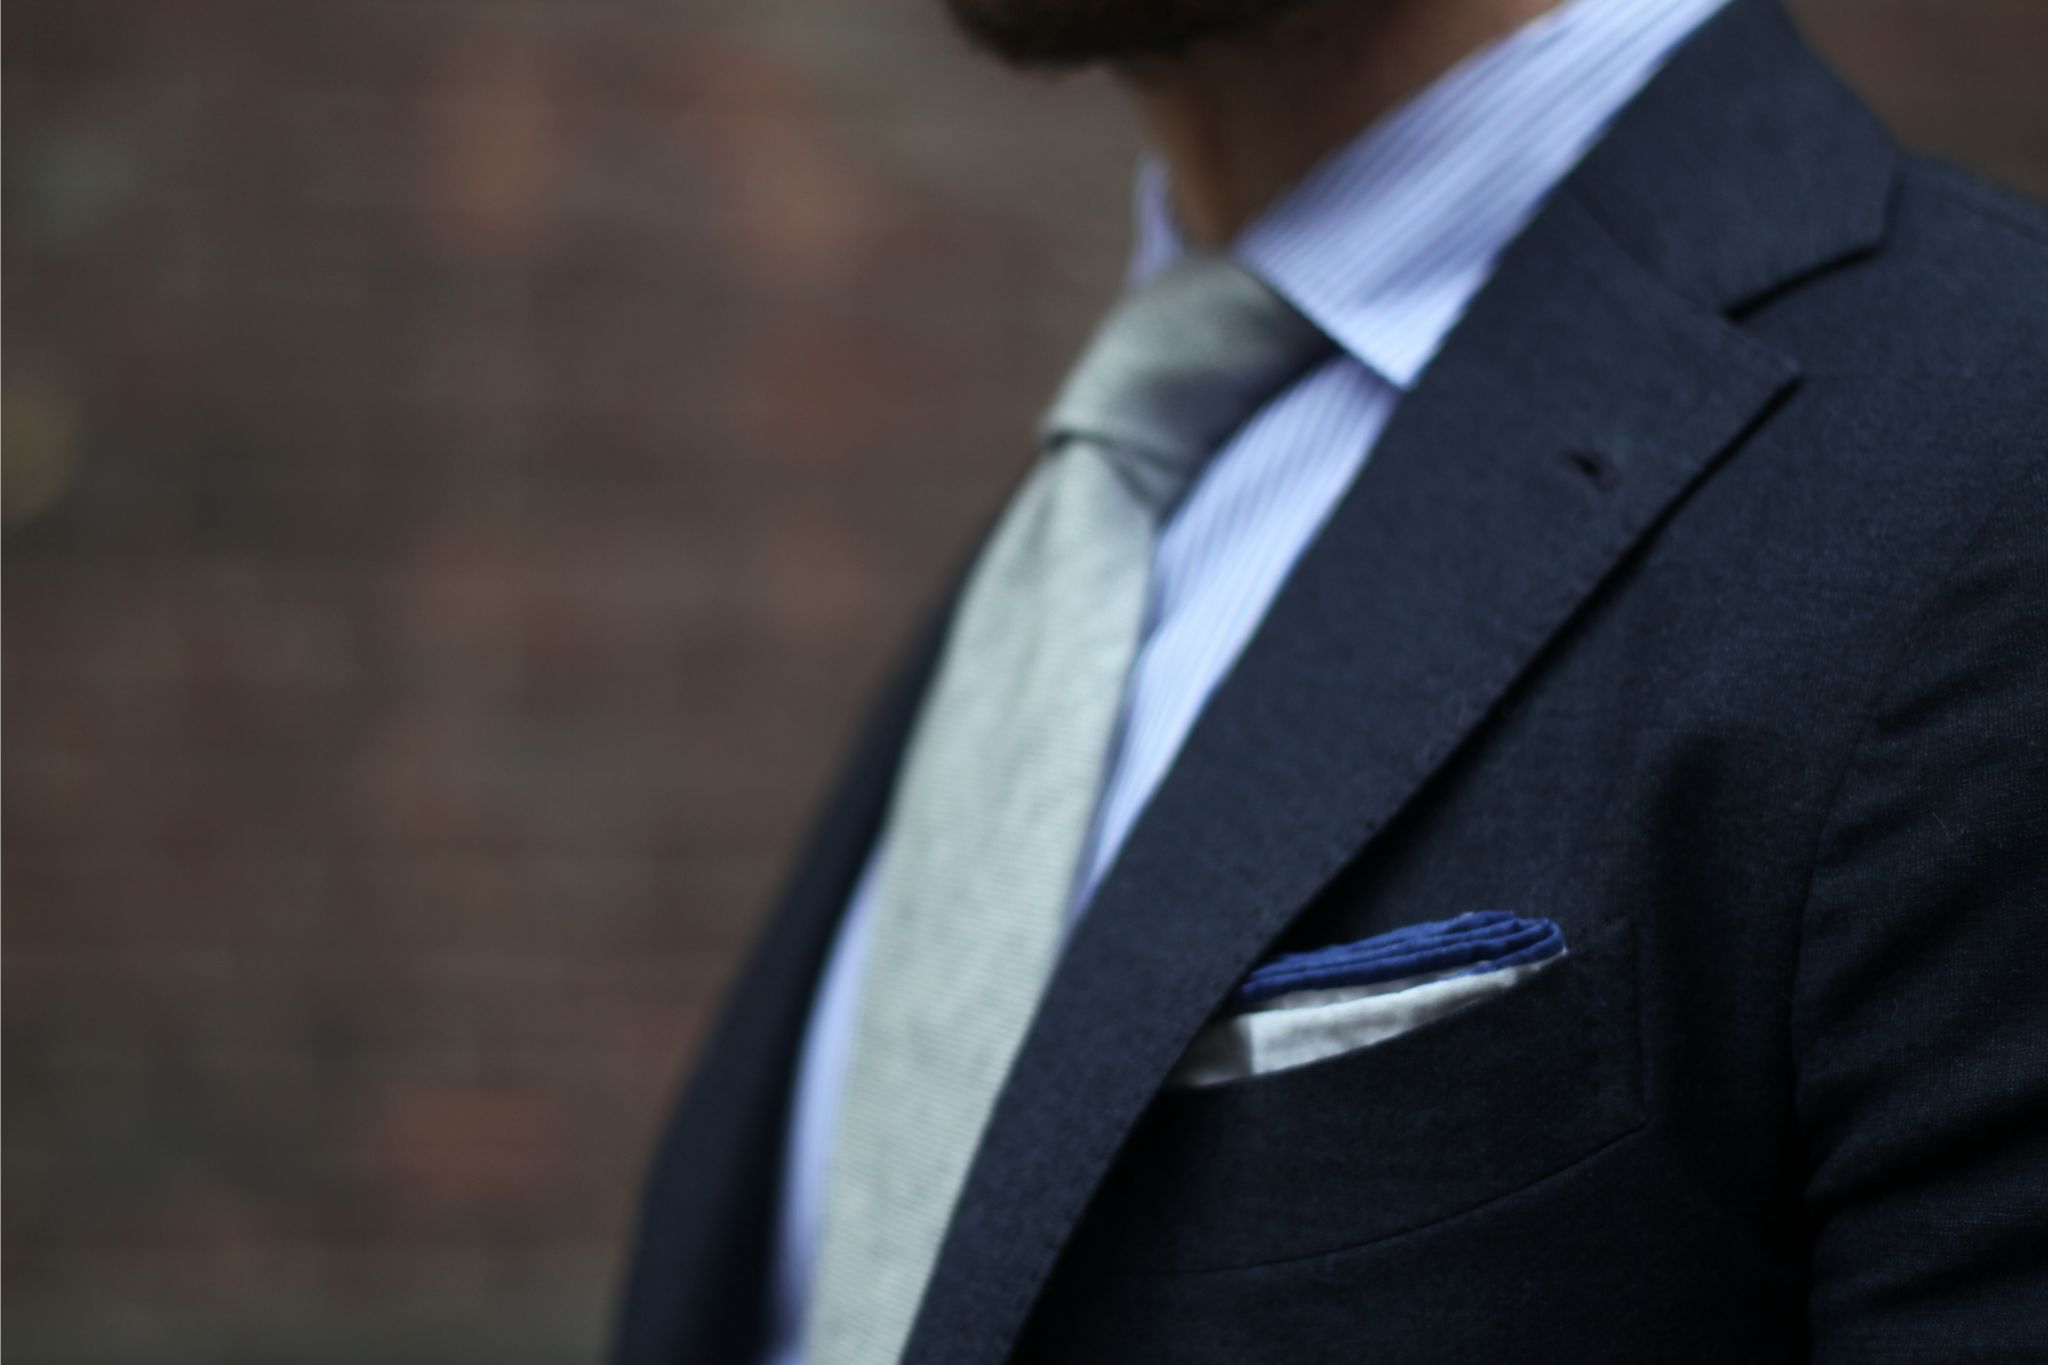 Gray suit with gray tie - white cotton pocket square with blue borders